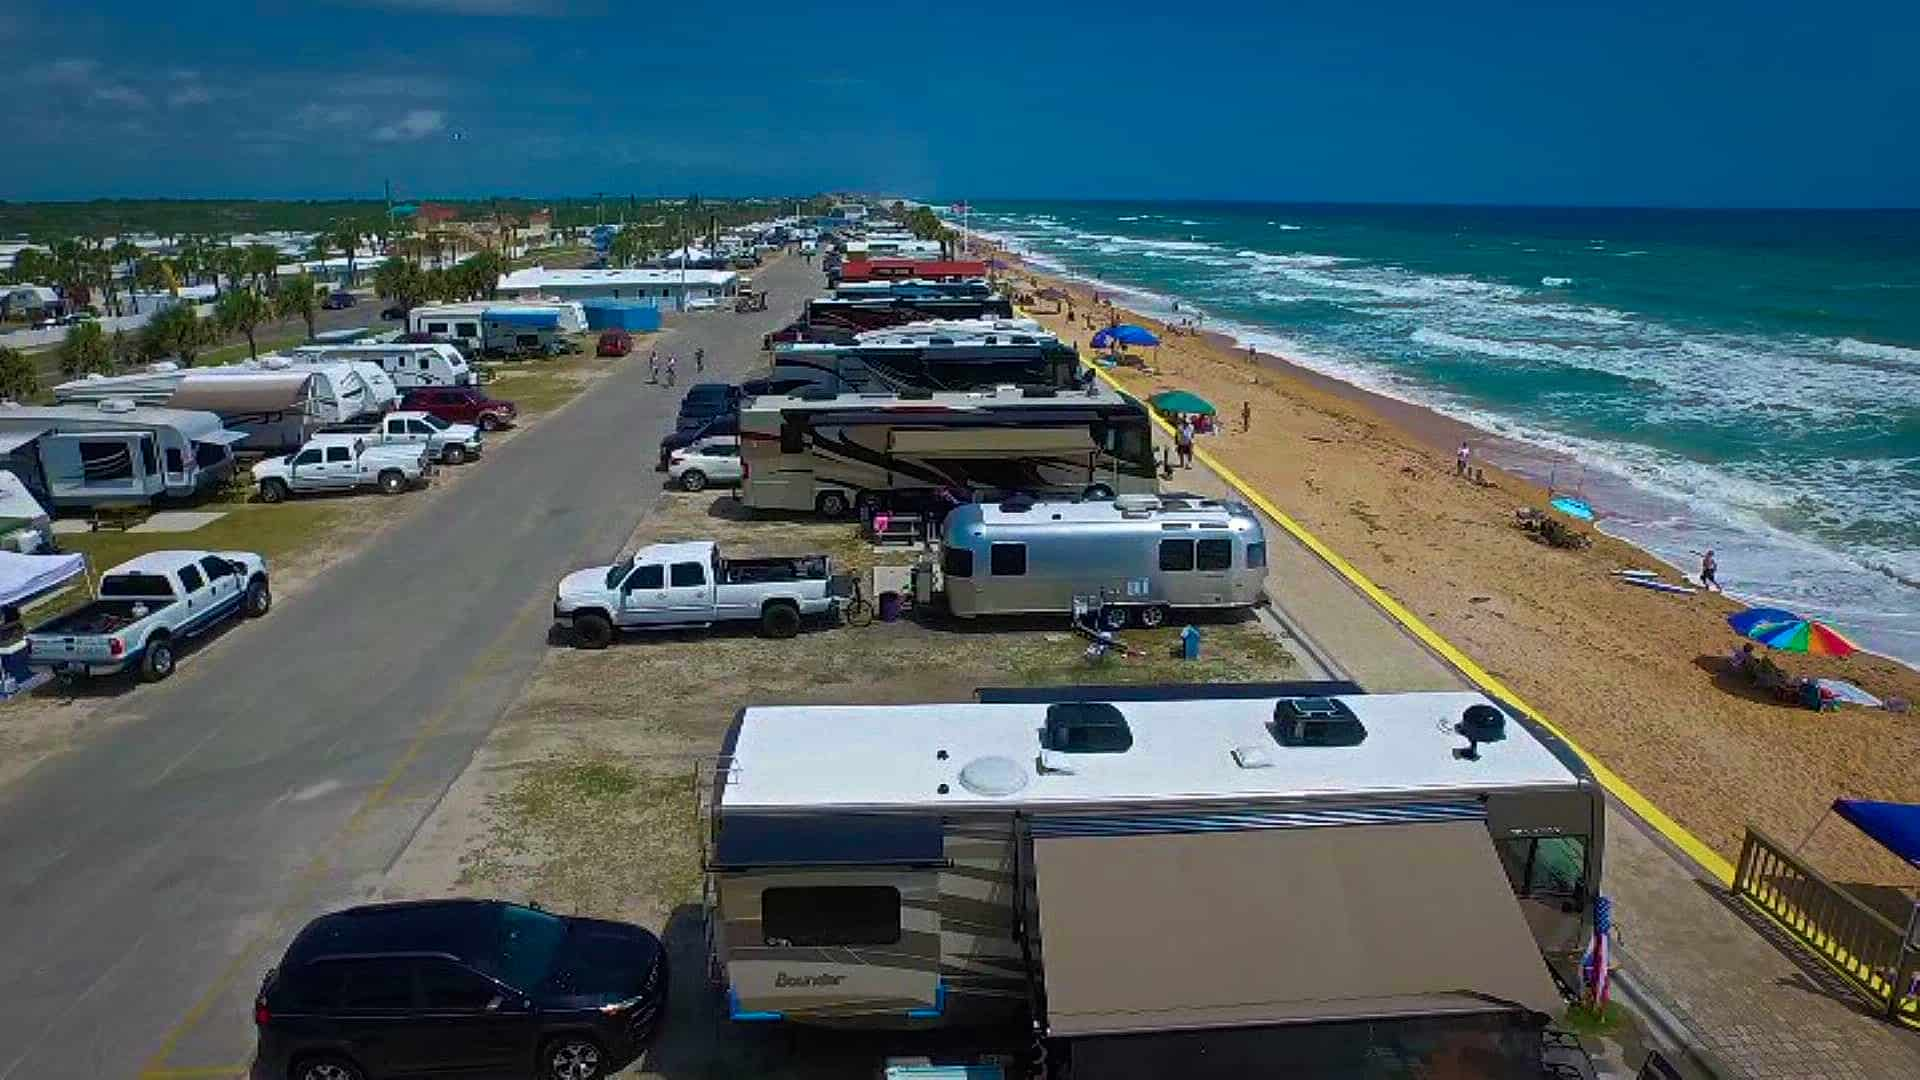 Best Beach Campgrounds Rv Parks In Florida For Rv Camping Right On The Sand